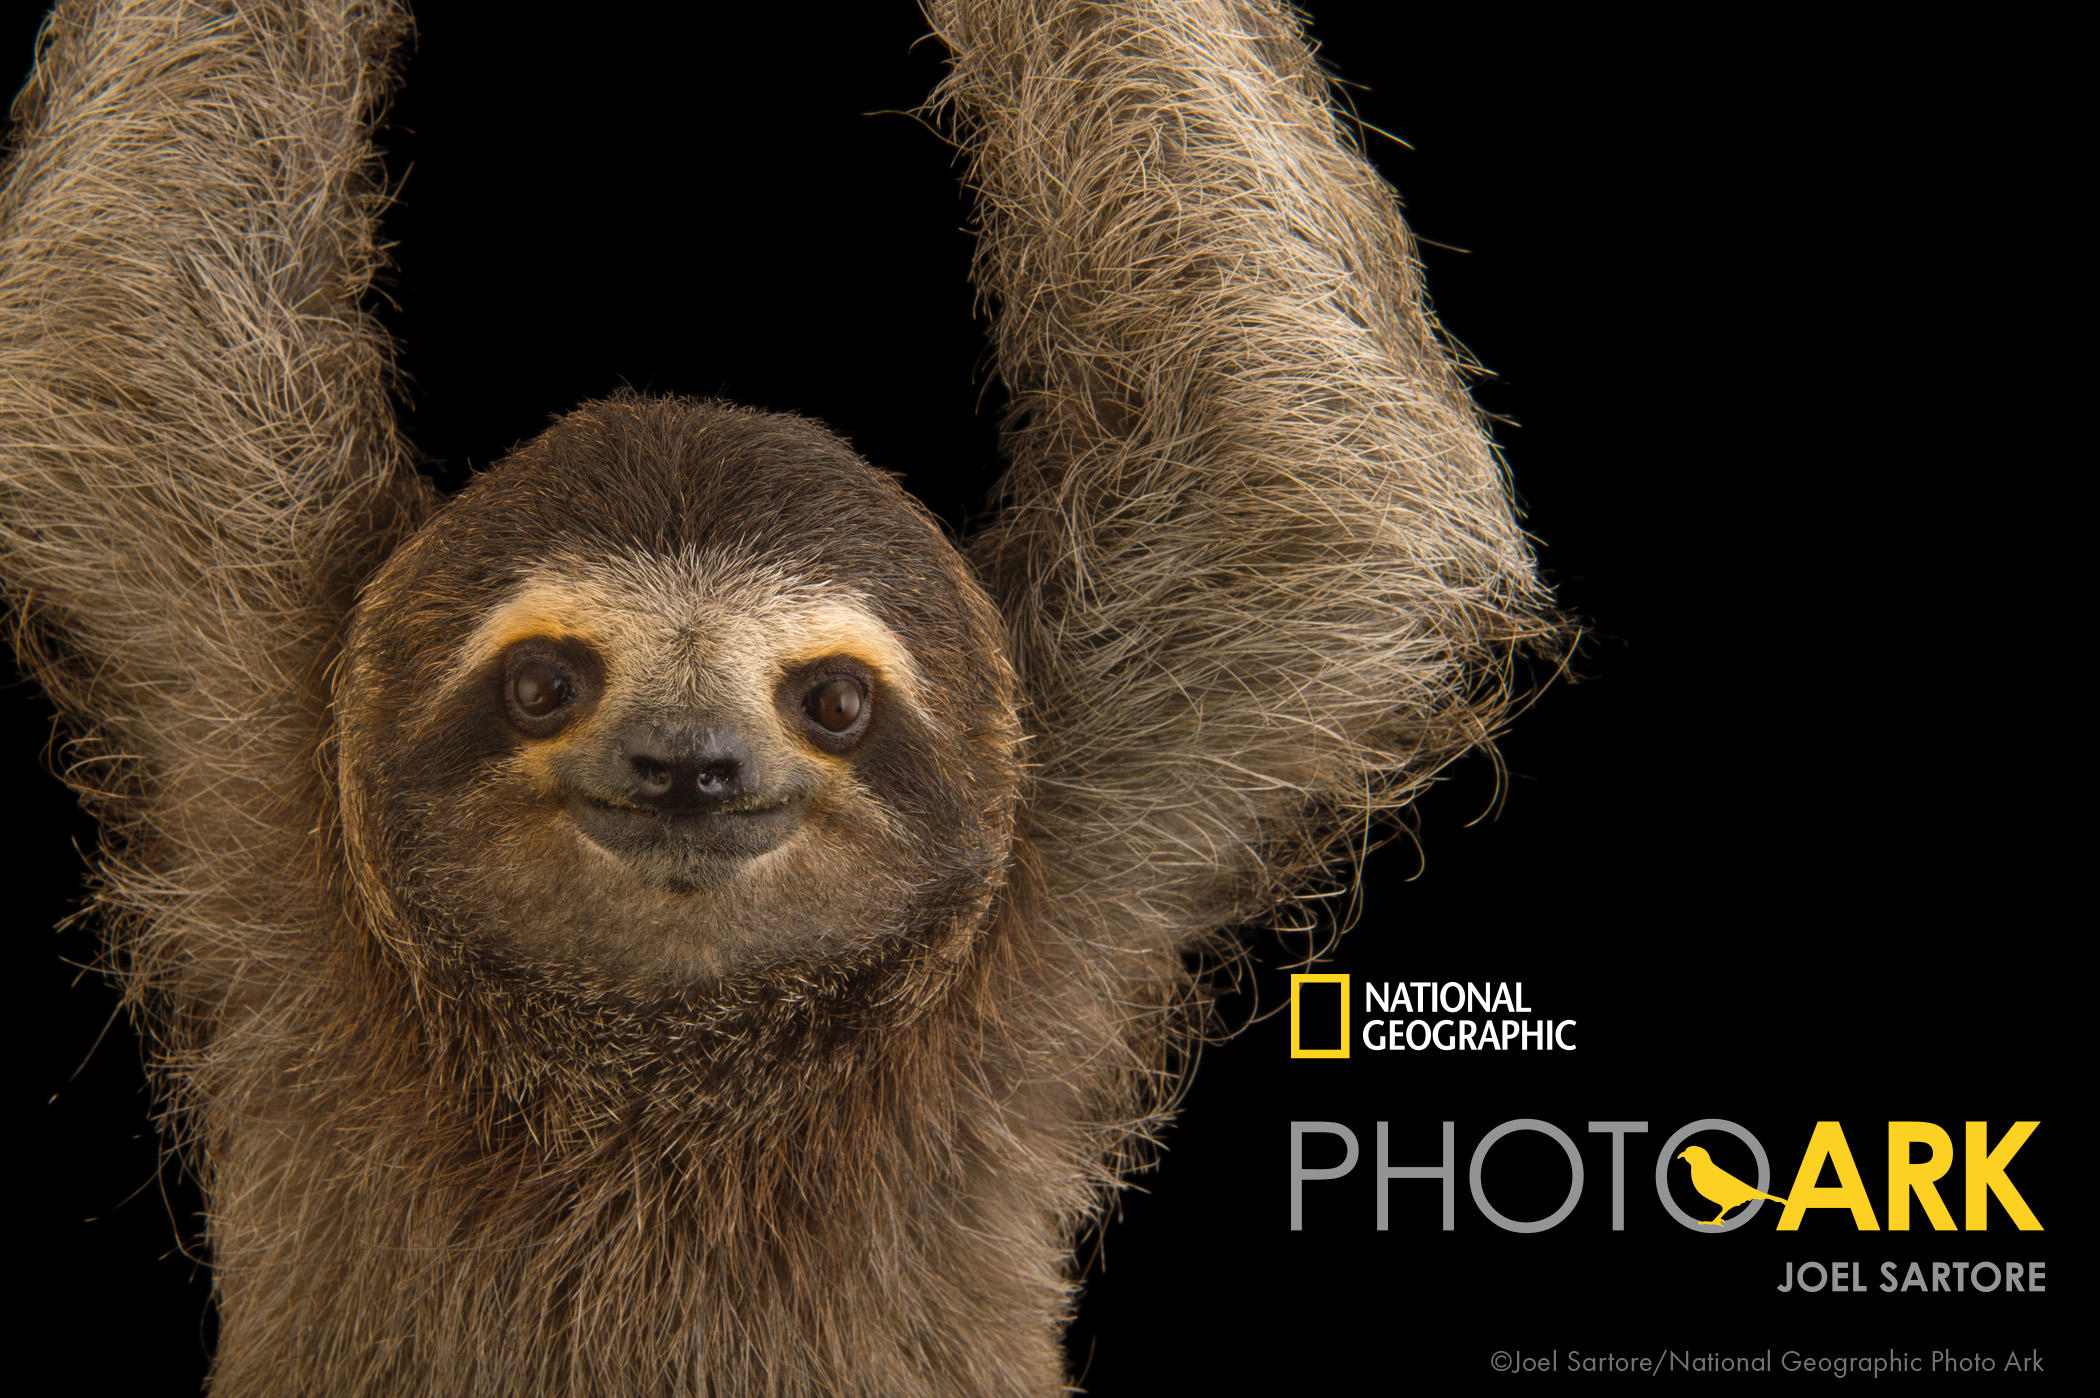 Exhibit To Feature Sartore S National Geographic Photos